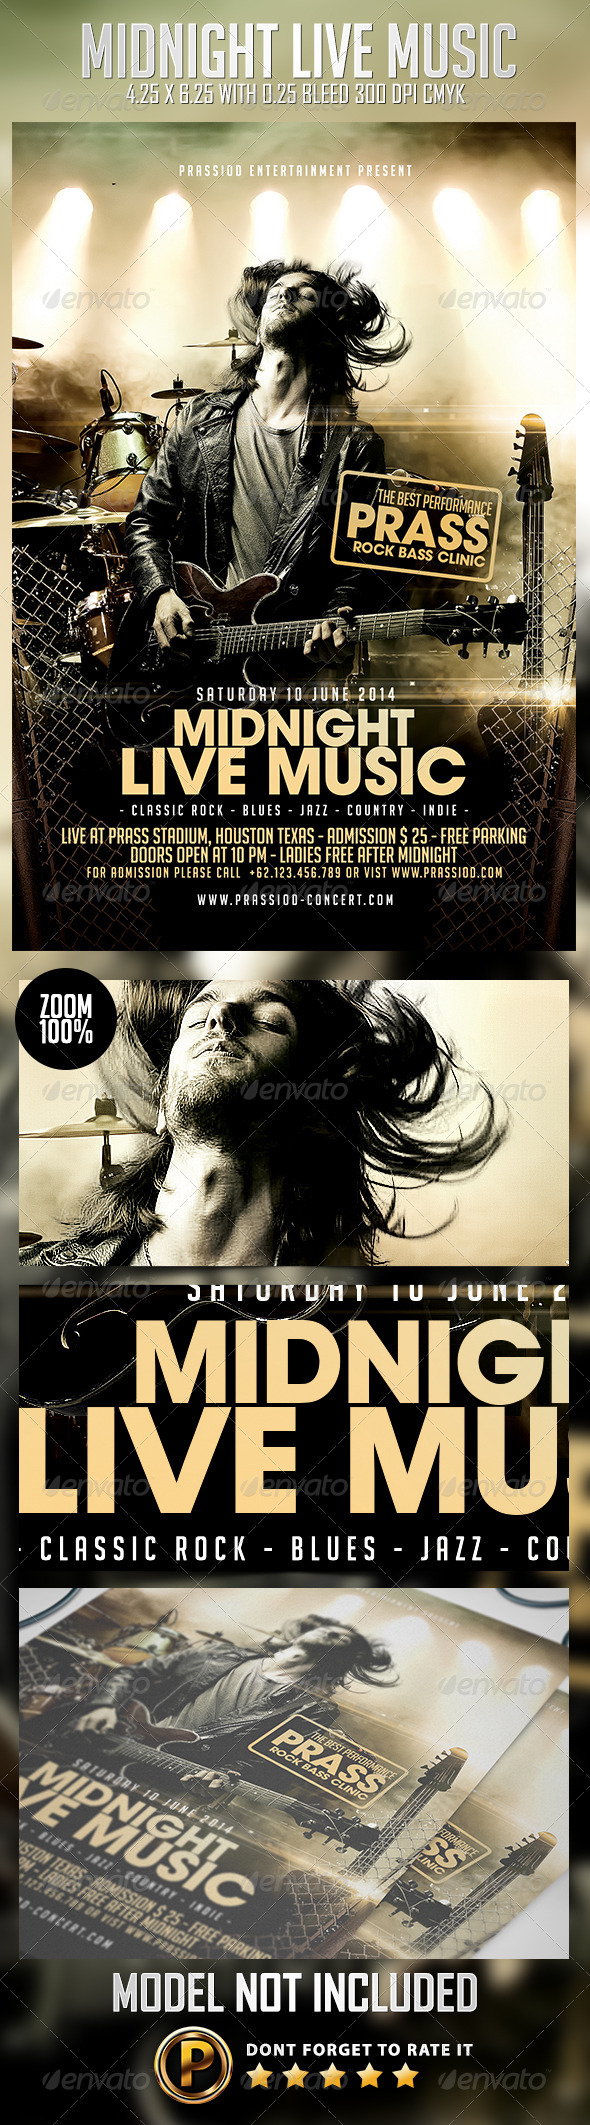 Midnight Live Music Flyer Template - Concerts Events